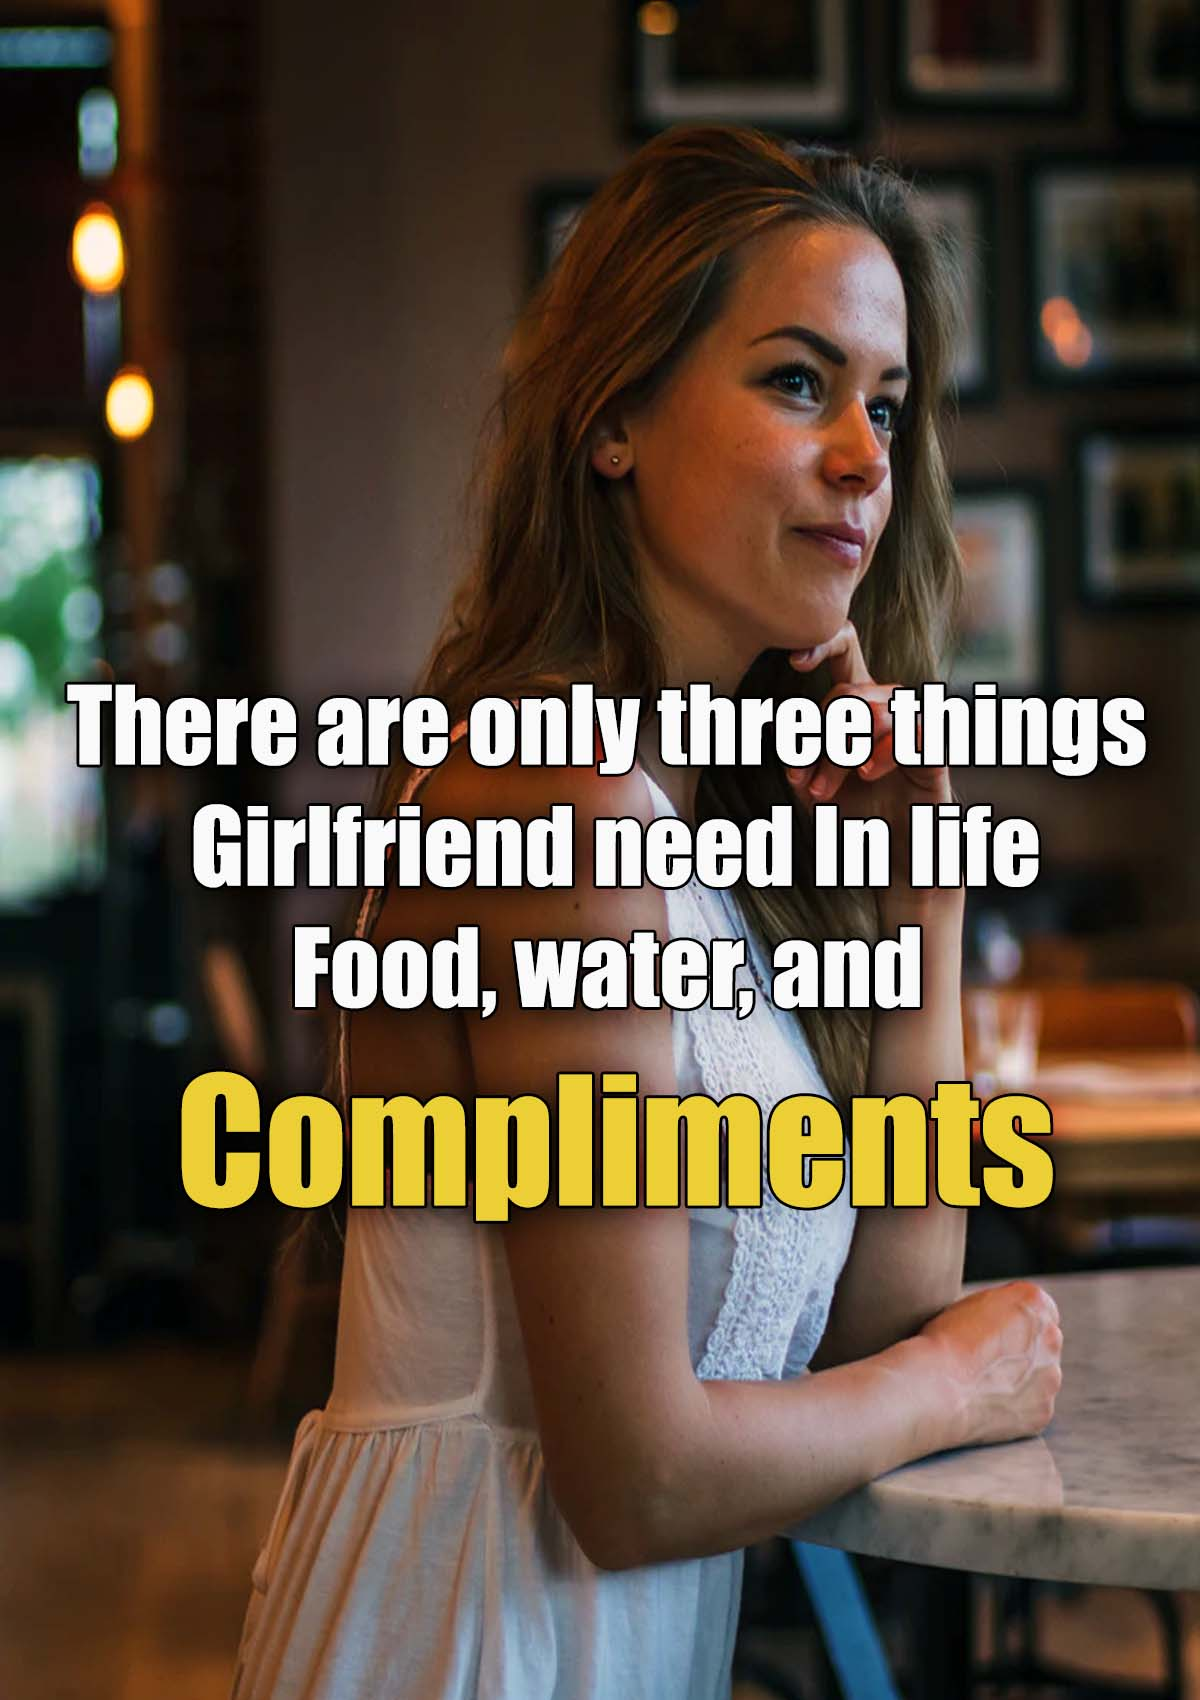 There are only three things girlfriend need in life: food, water, and complimentsChris Rock funny love quotes